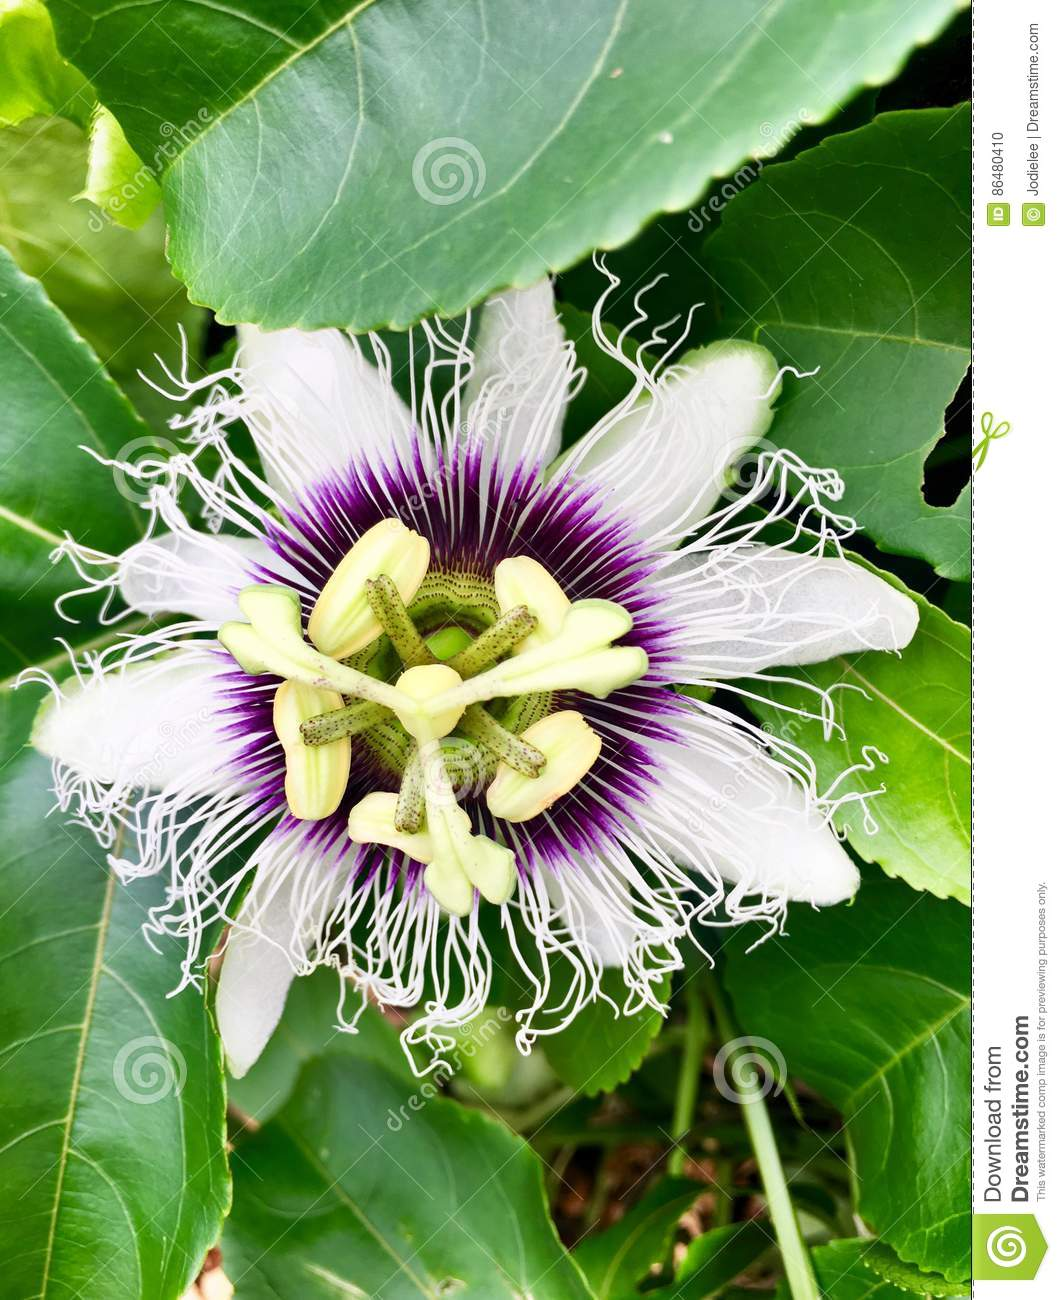 Tropical passion fruit flower up close in purple and white stock close flower fruit hawaii passion purple tropical white dhlflorist Images